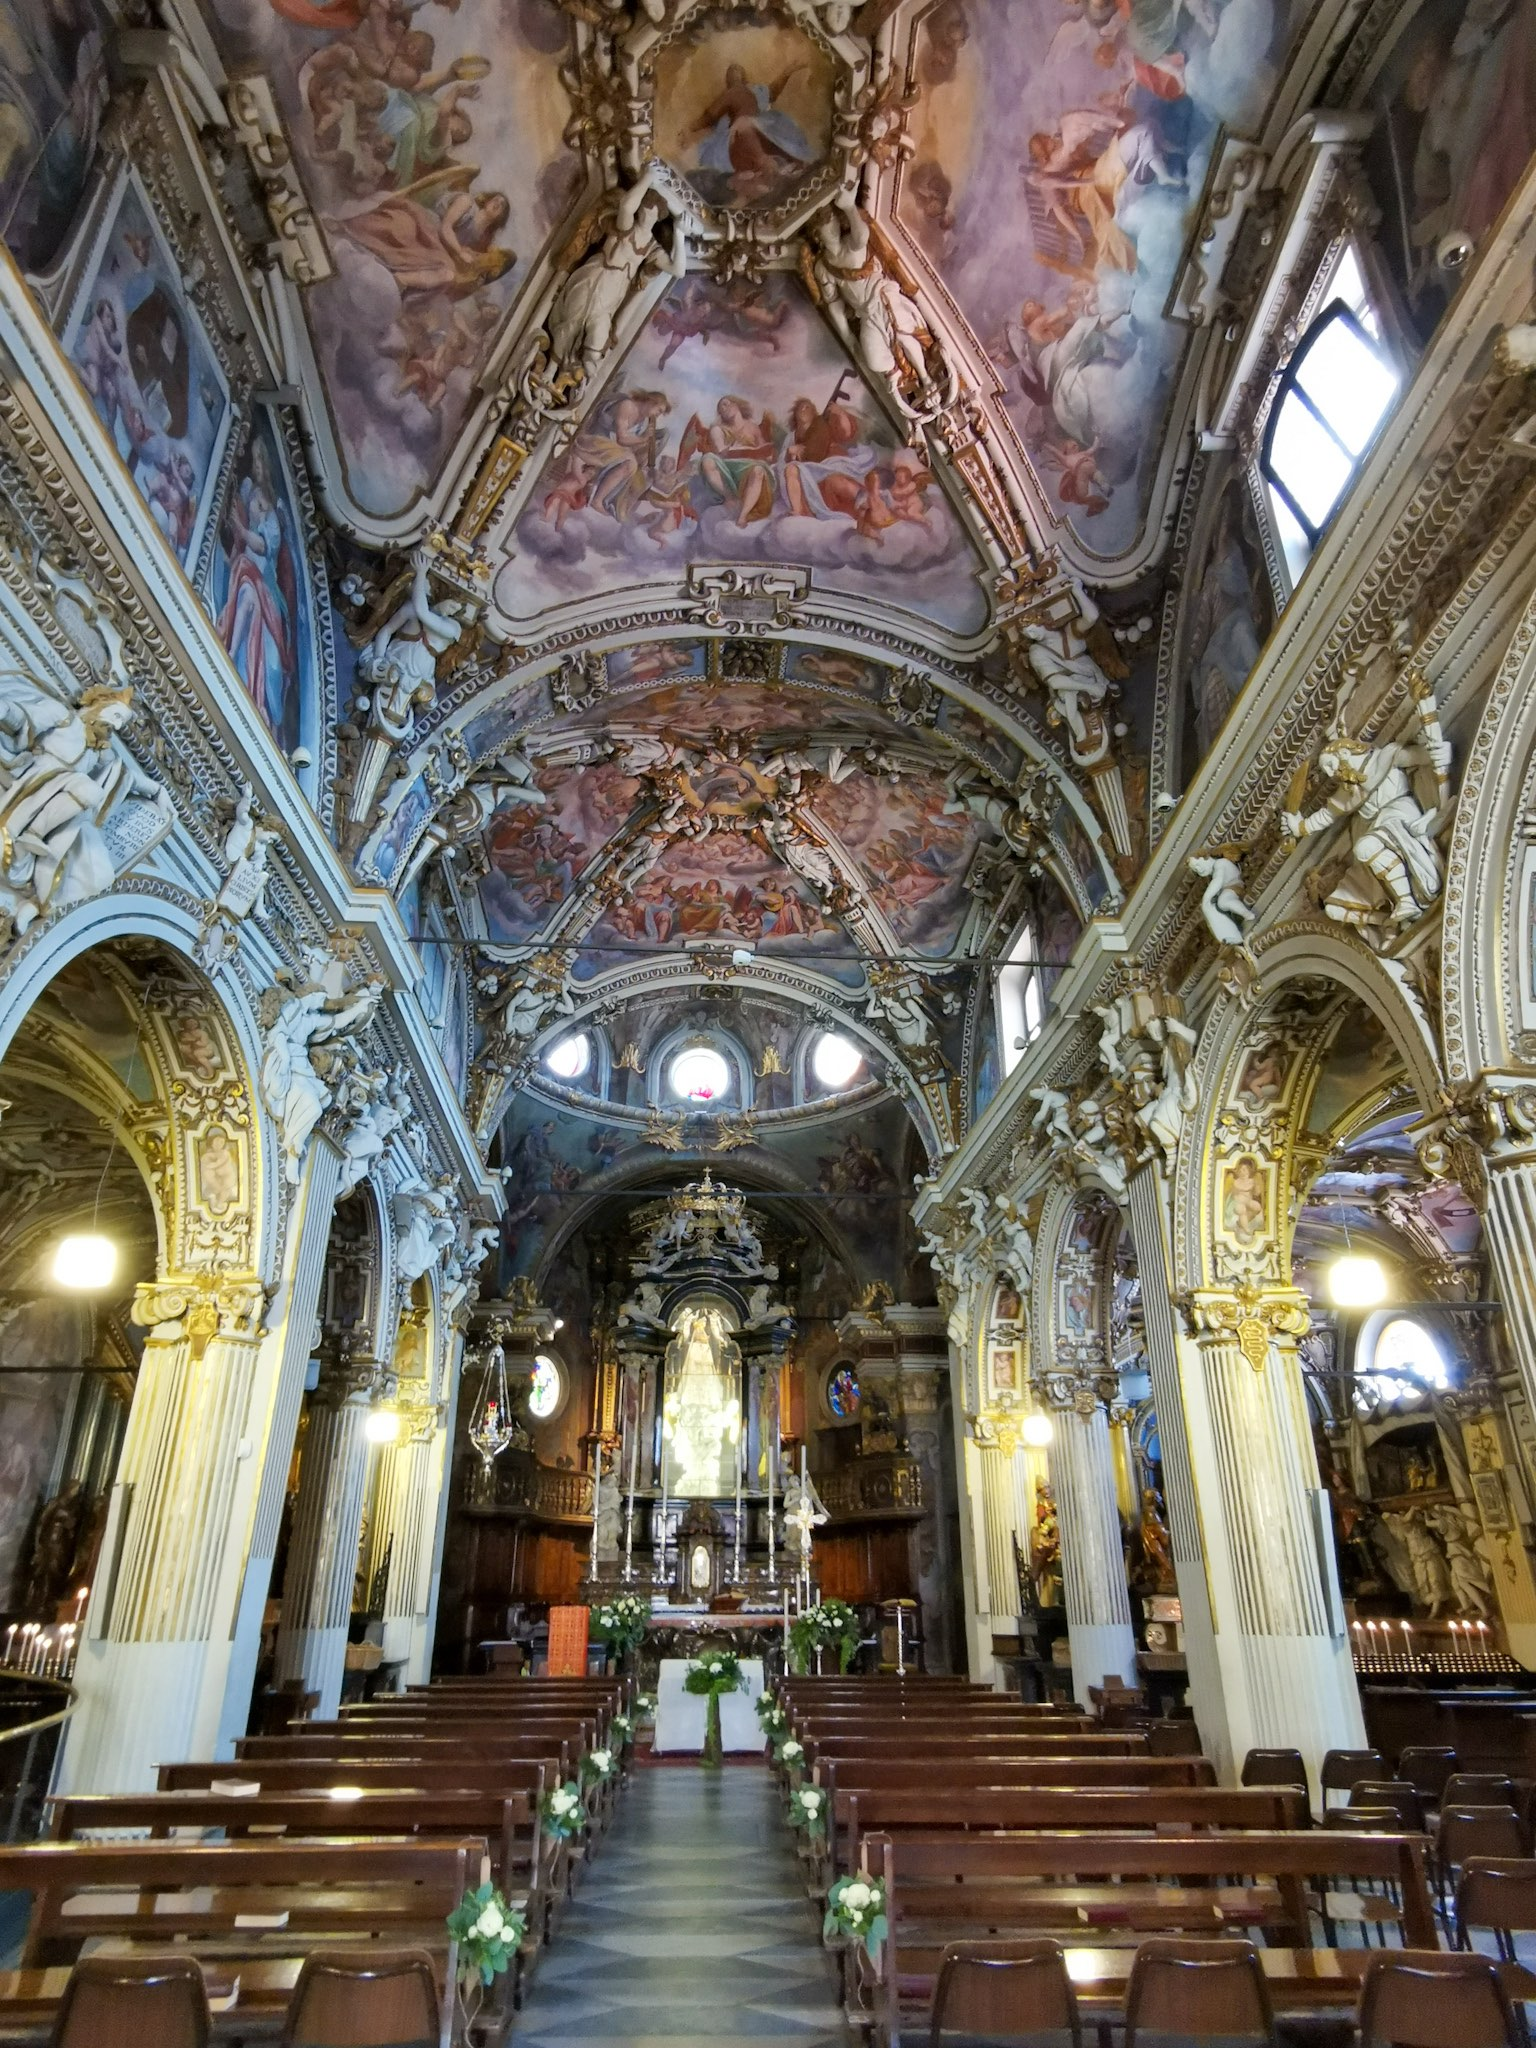 The Sanctuary of Santa Maria del Monte in Varese